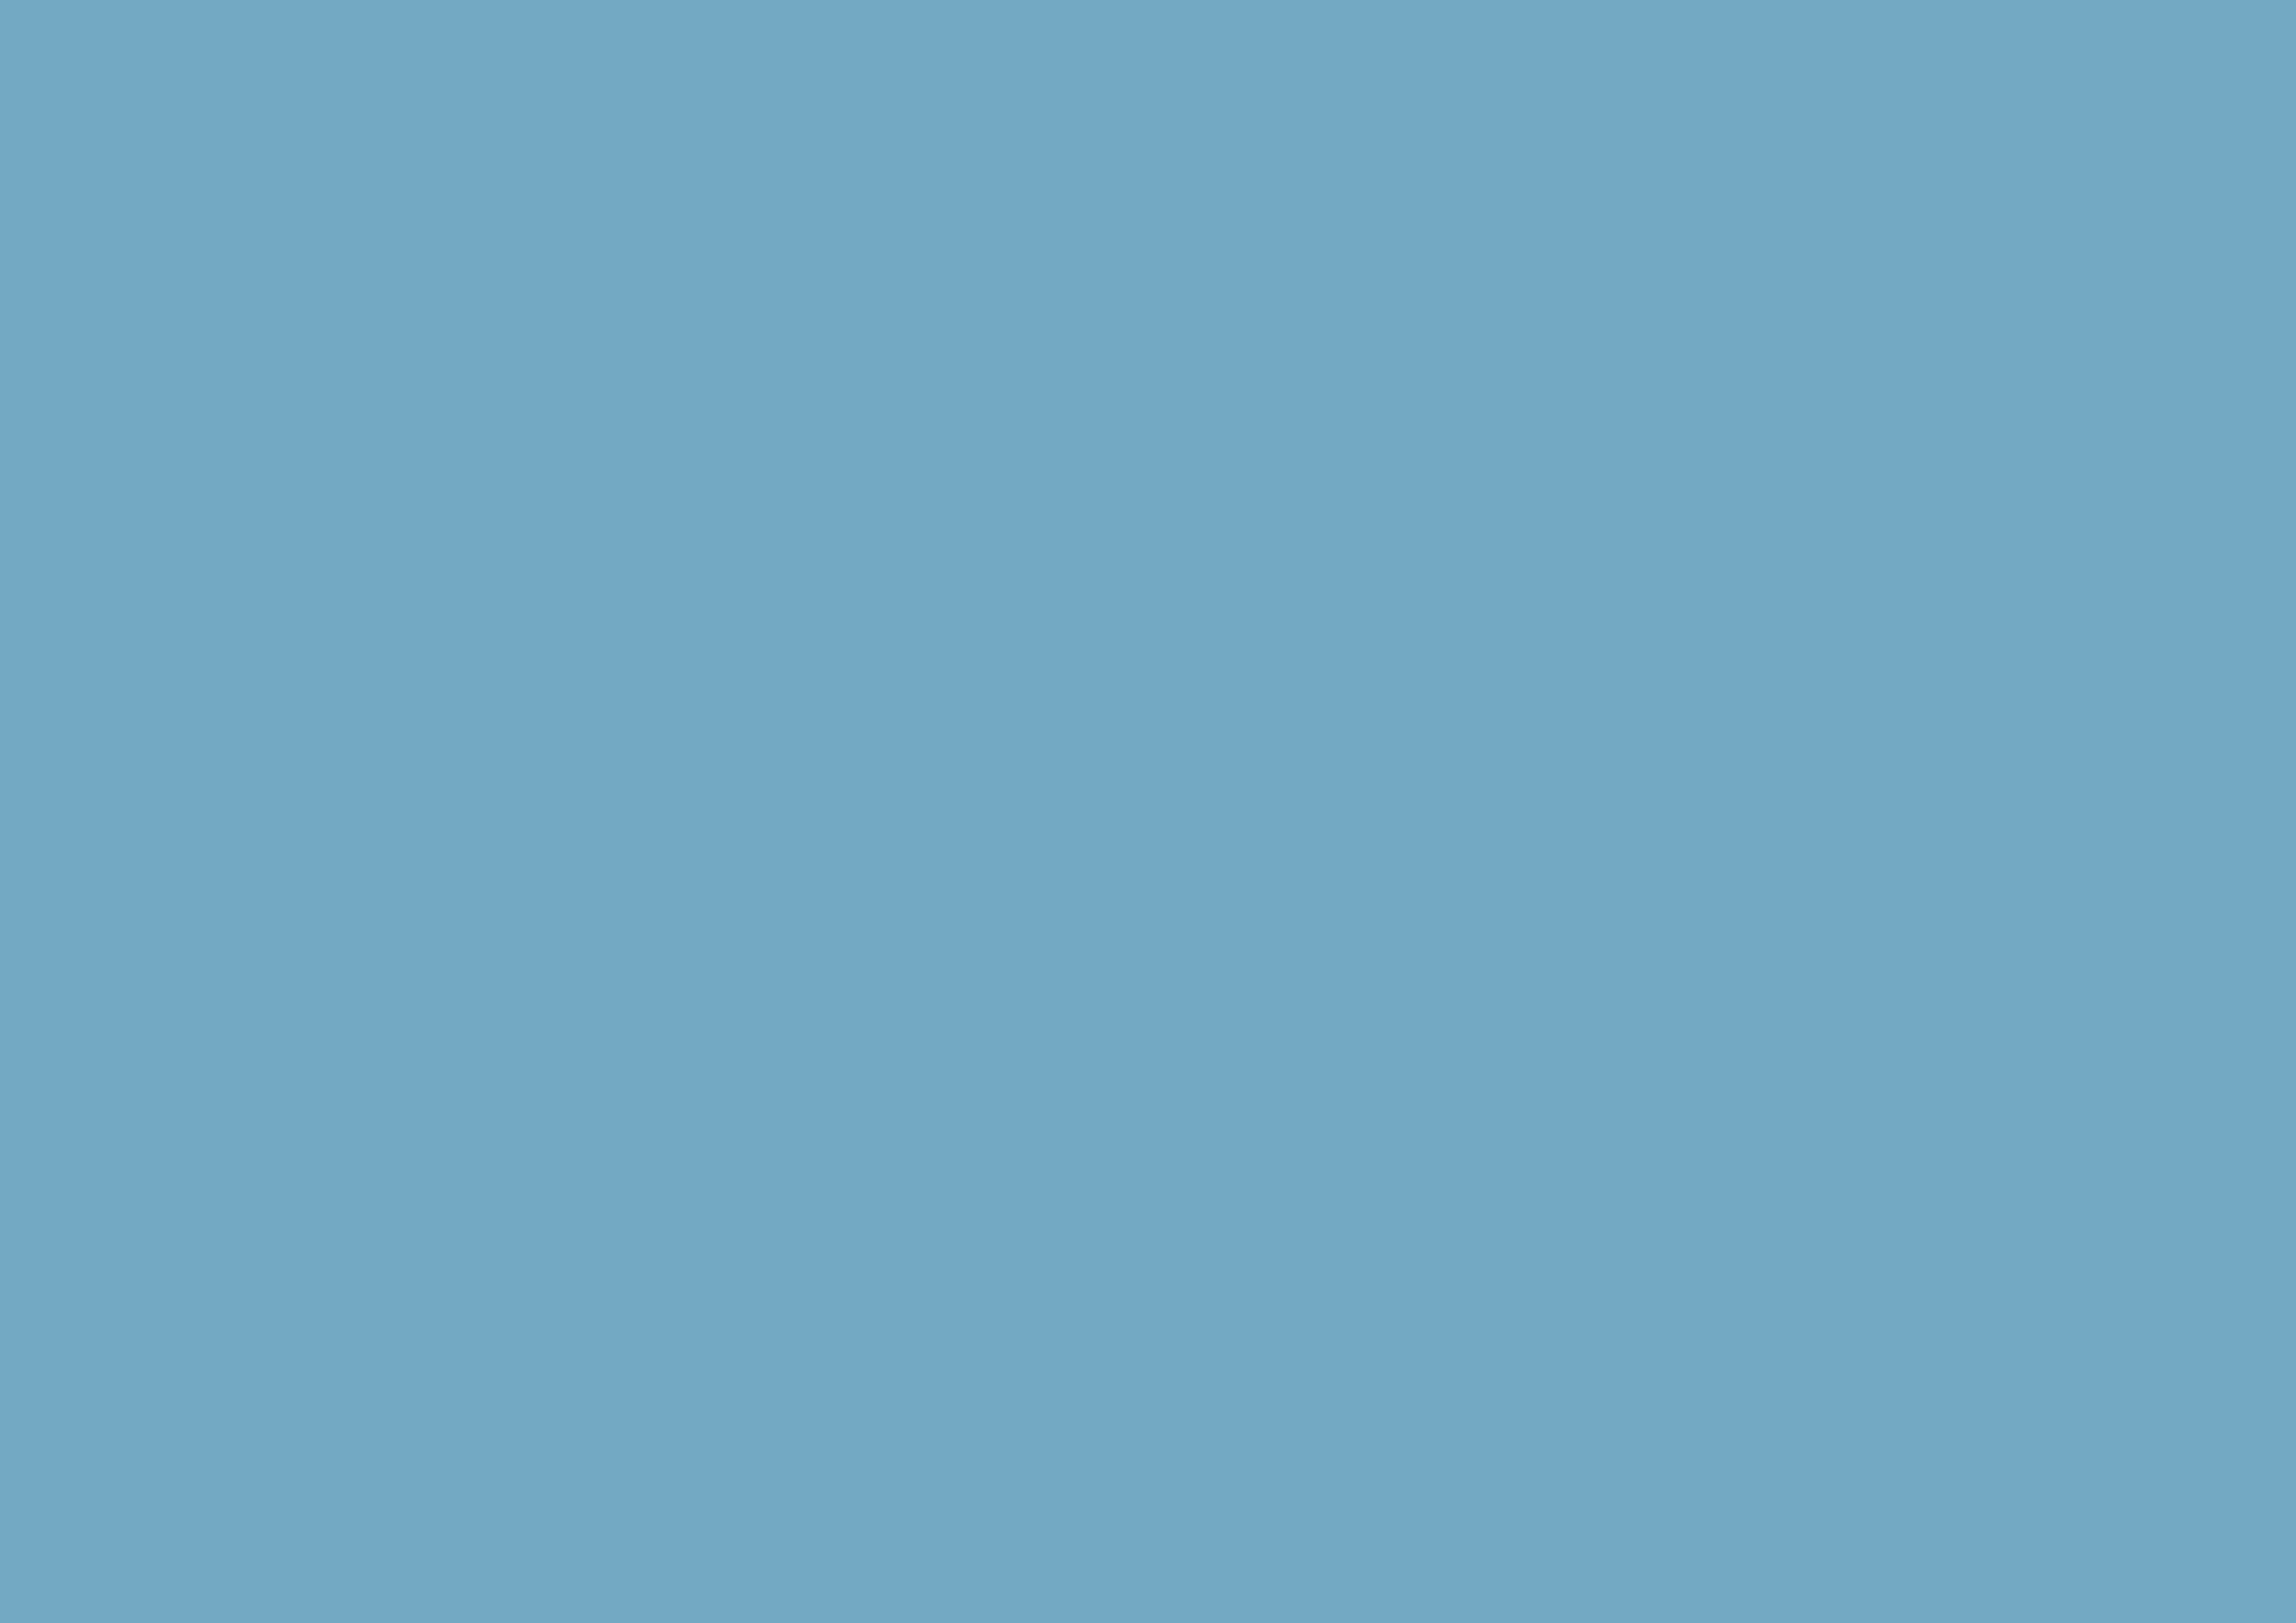 3508x2480 Moonstone Blue Solid Color Background